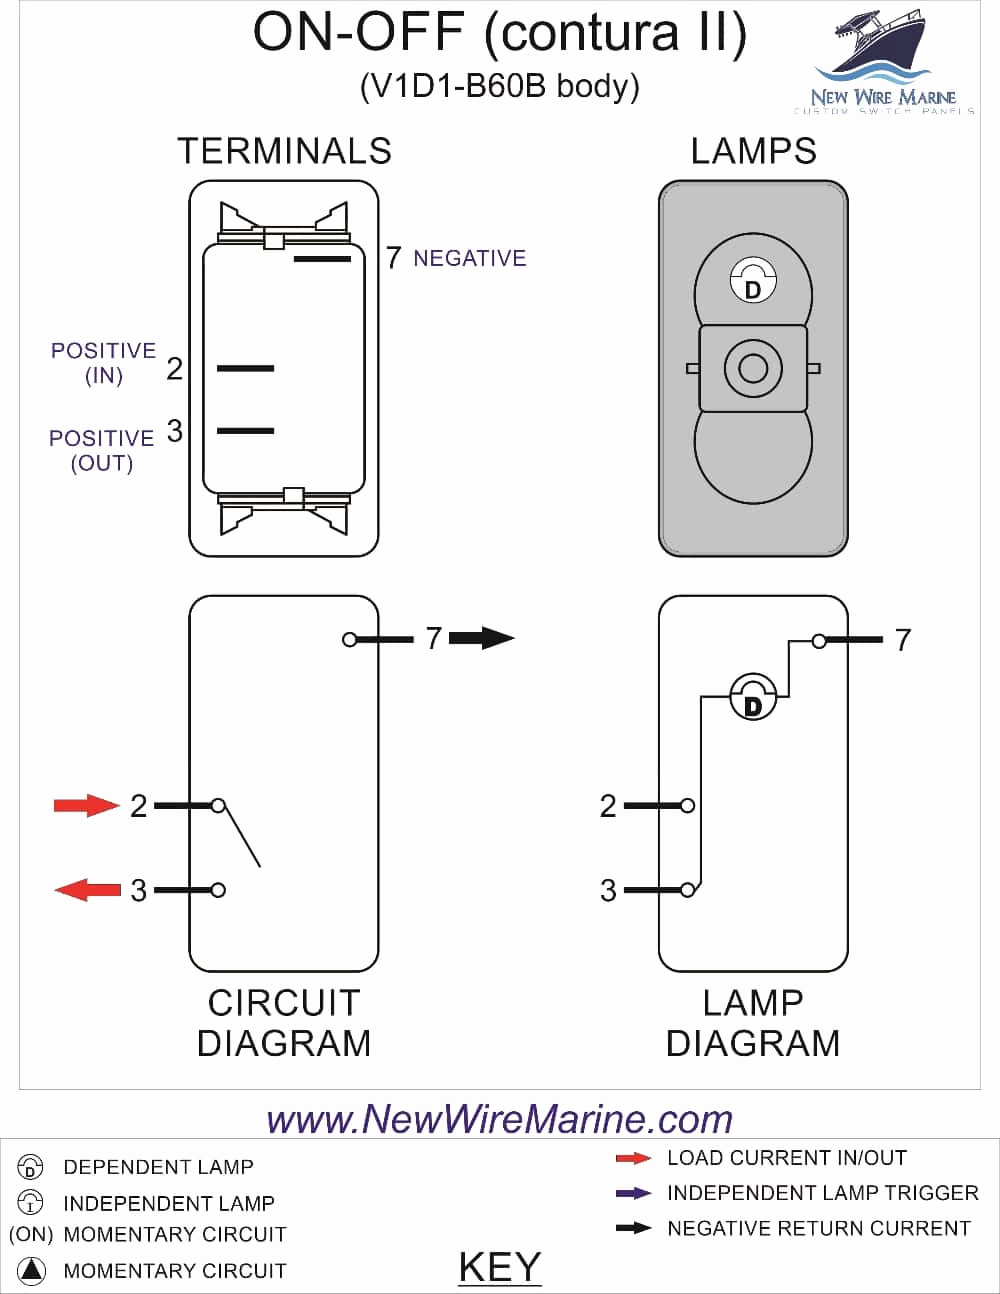 6 pin dpdt switch wiring diagram Collection-Dpdt Switch Diagram Awesome Magnificent Spst toggle Switch Wiring Diagram Image Electrical 11-h